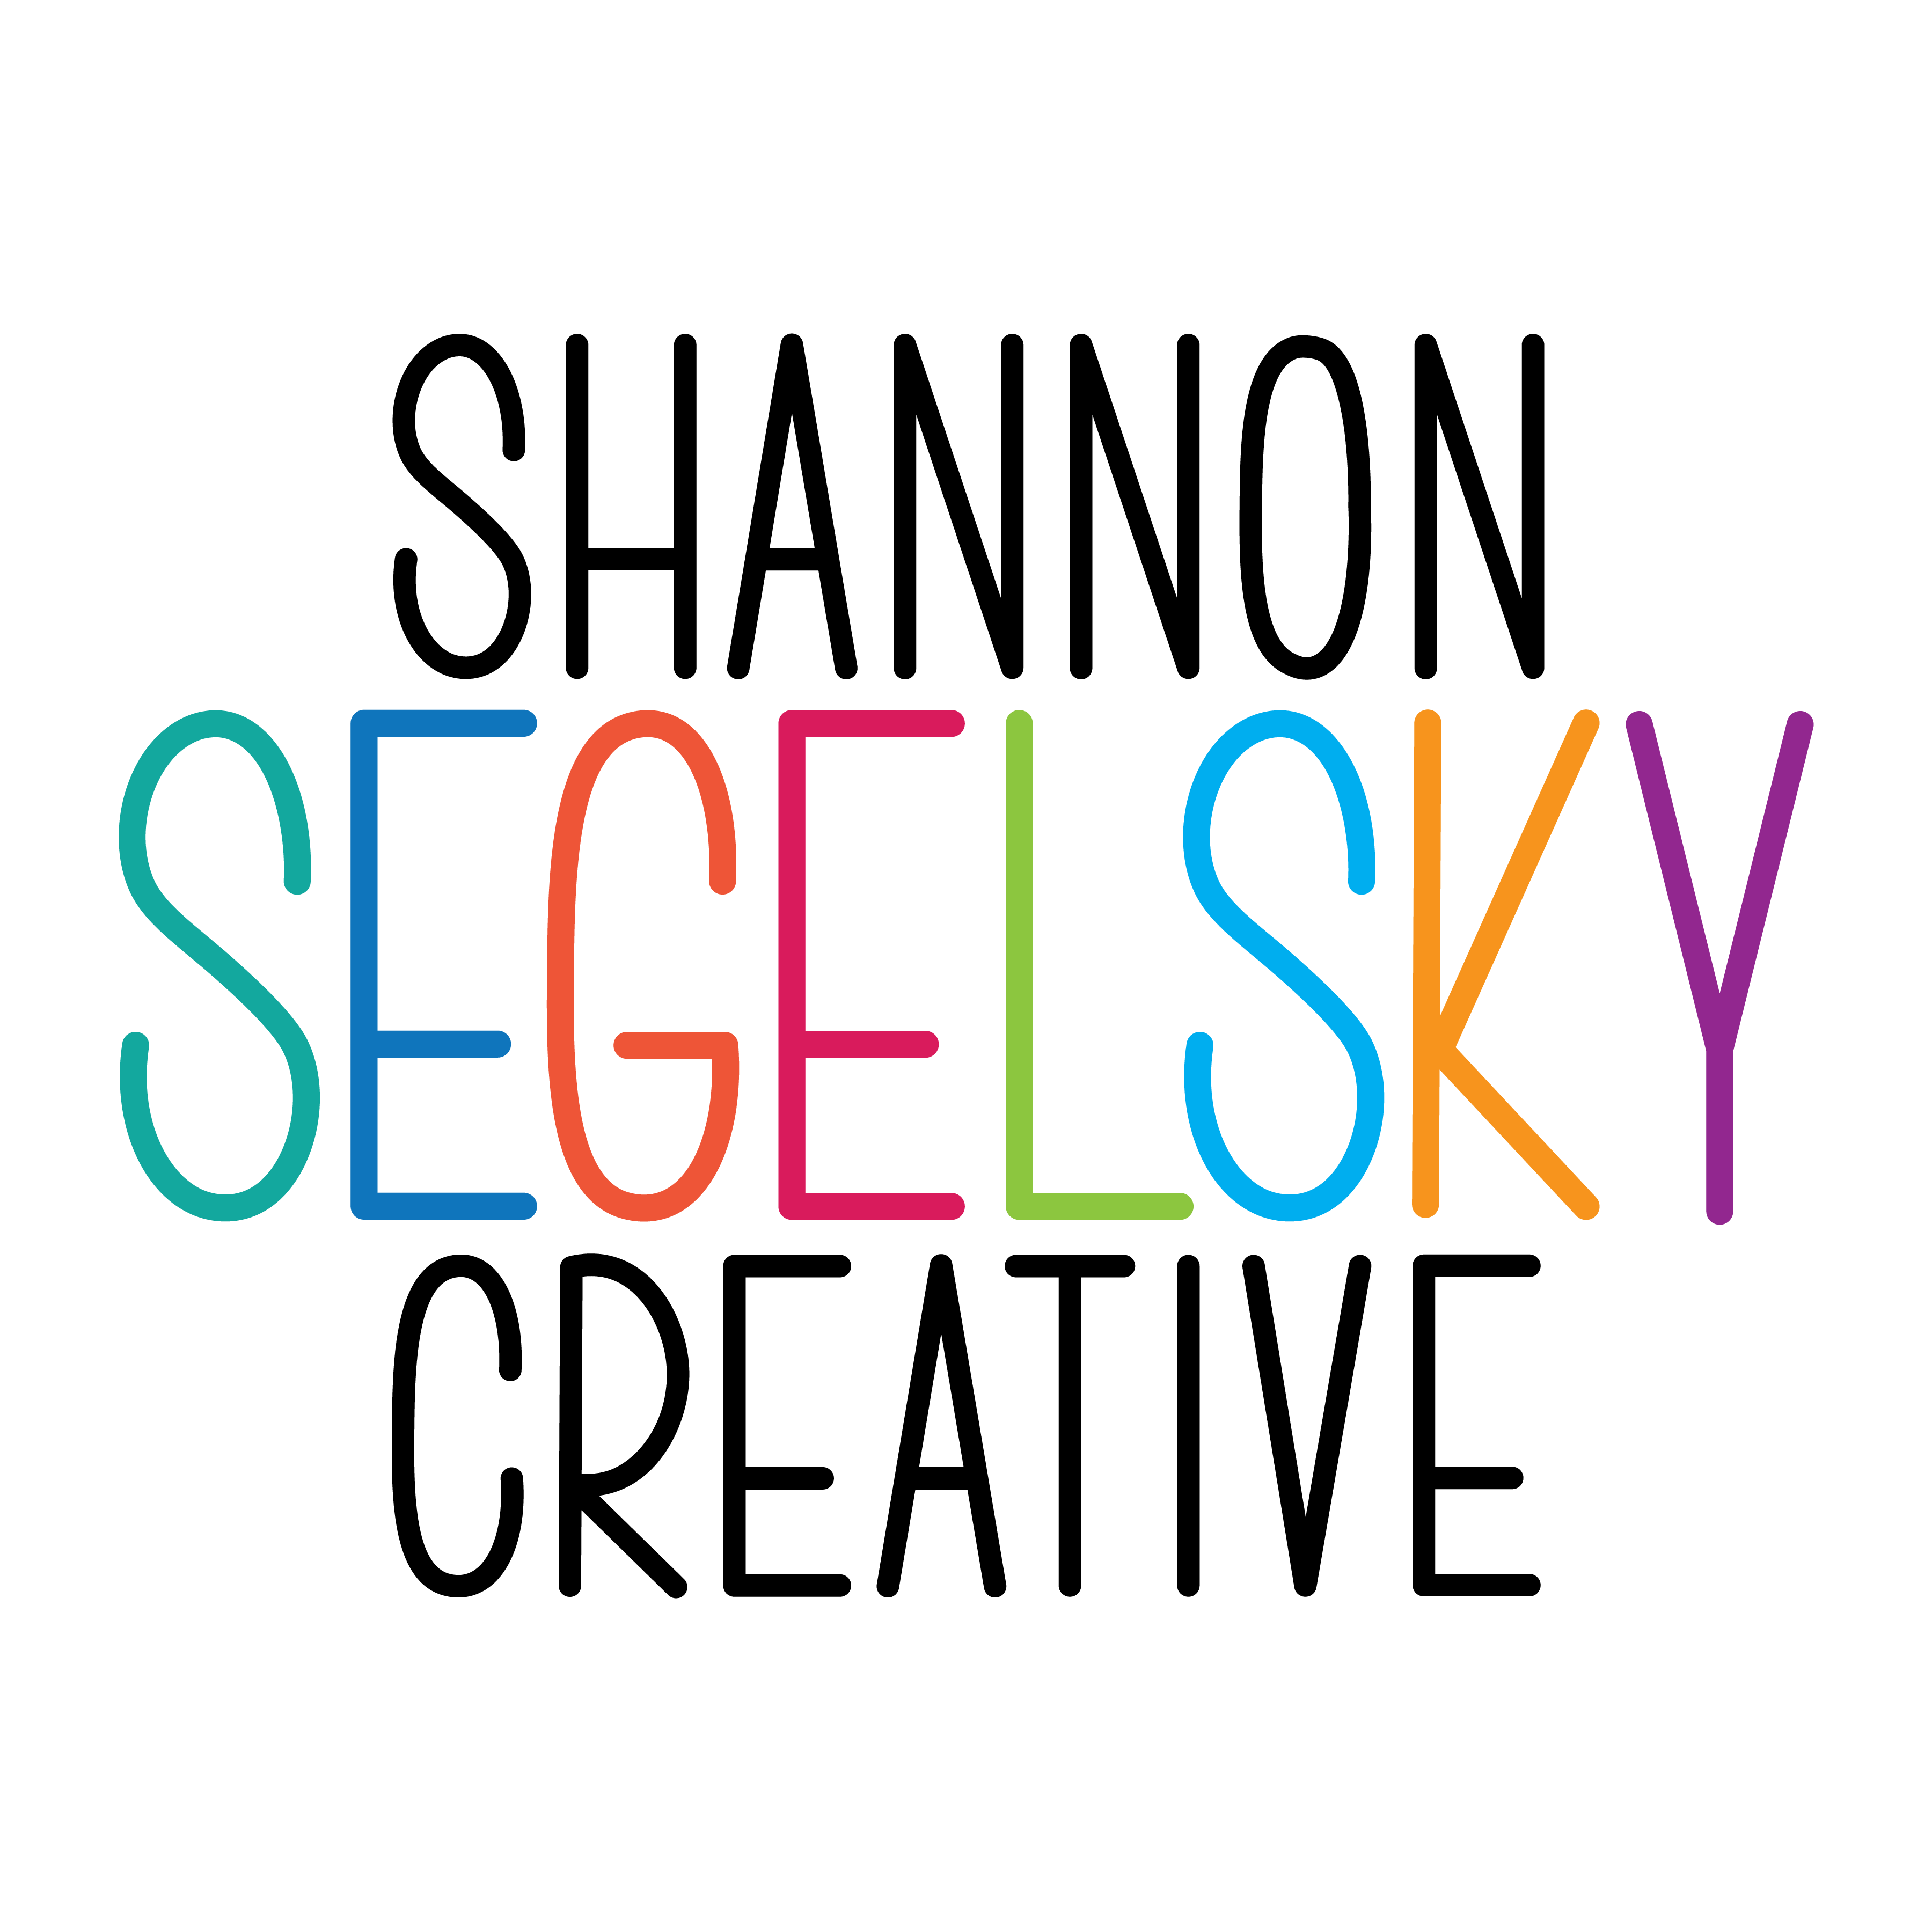 Shannon Segelsky Creative